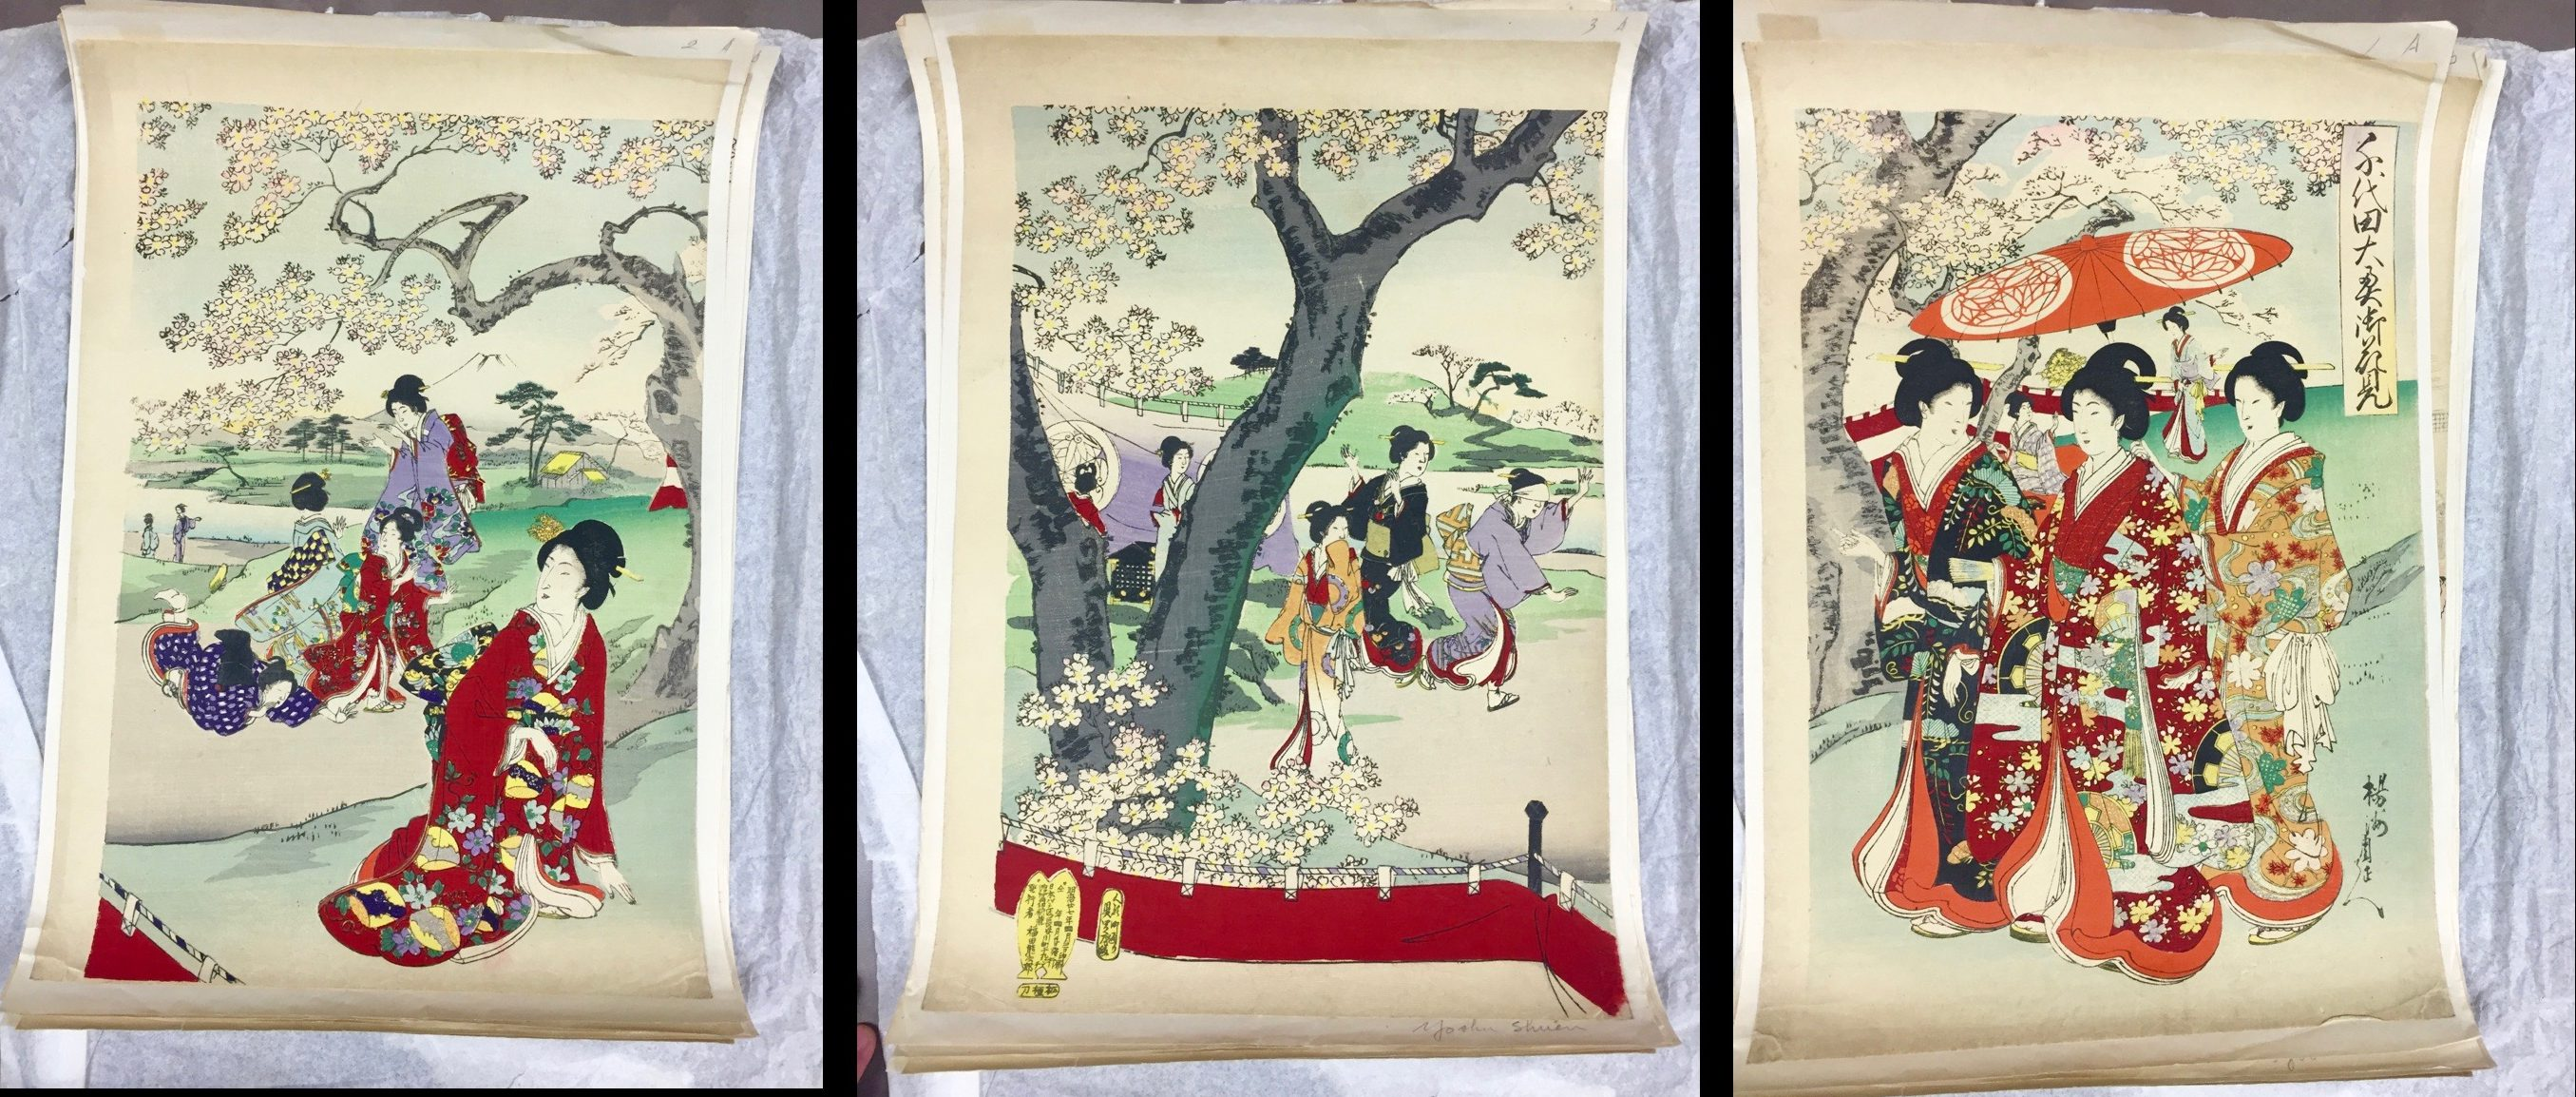 Meiji-era Prints in the St. Kate's Special Collections